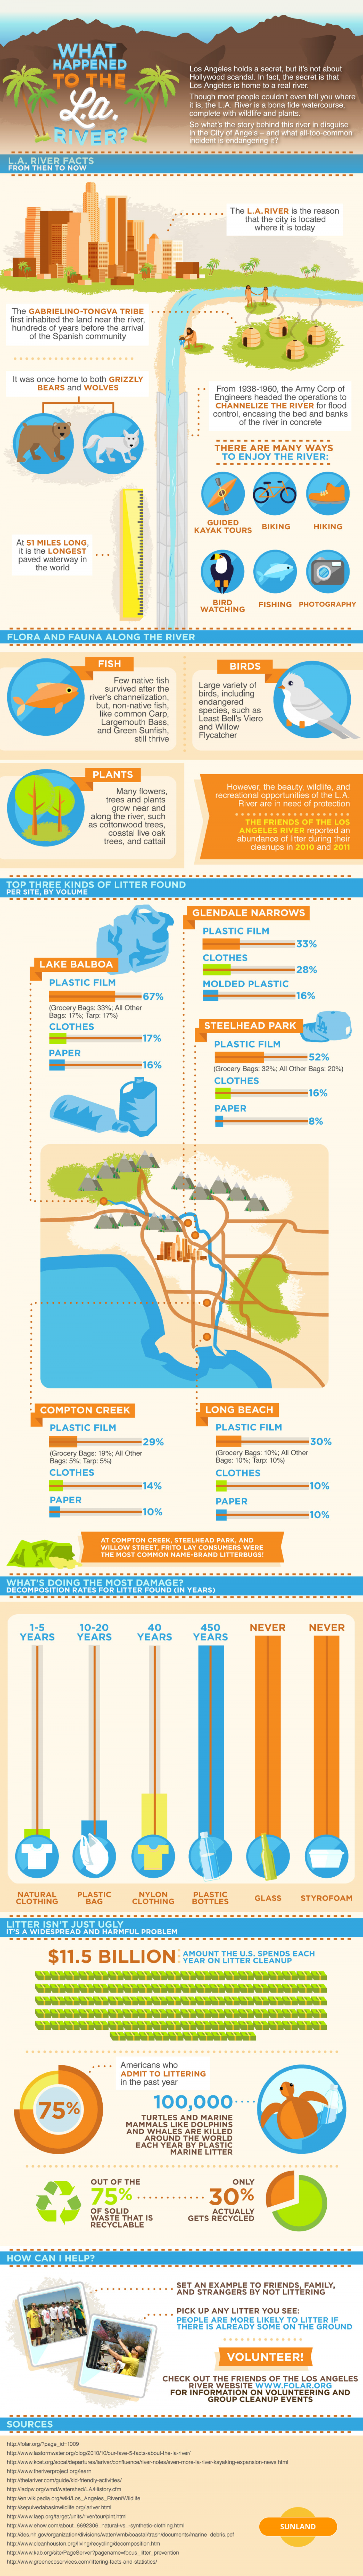 What Happened to the L.A. River? Infographic